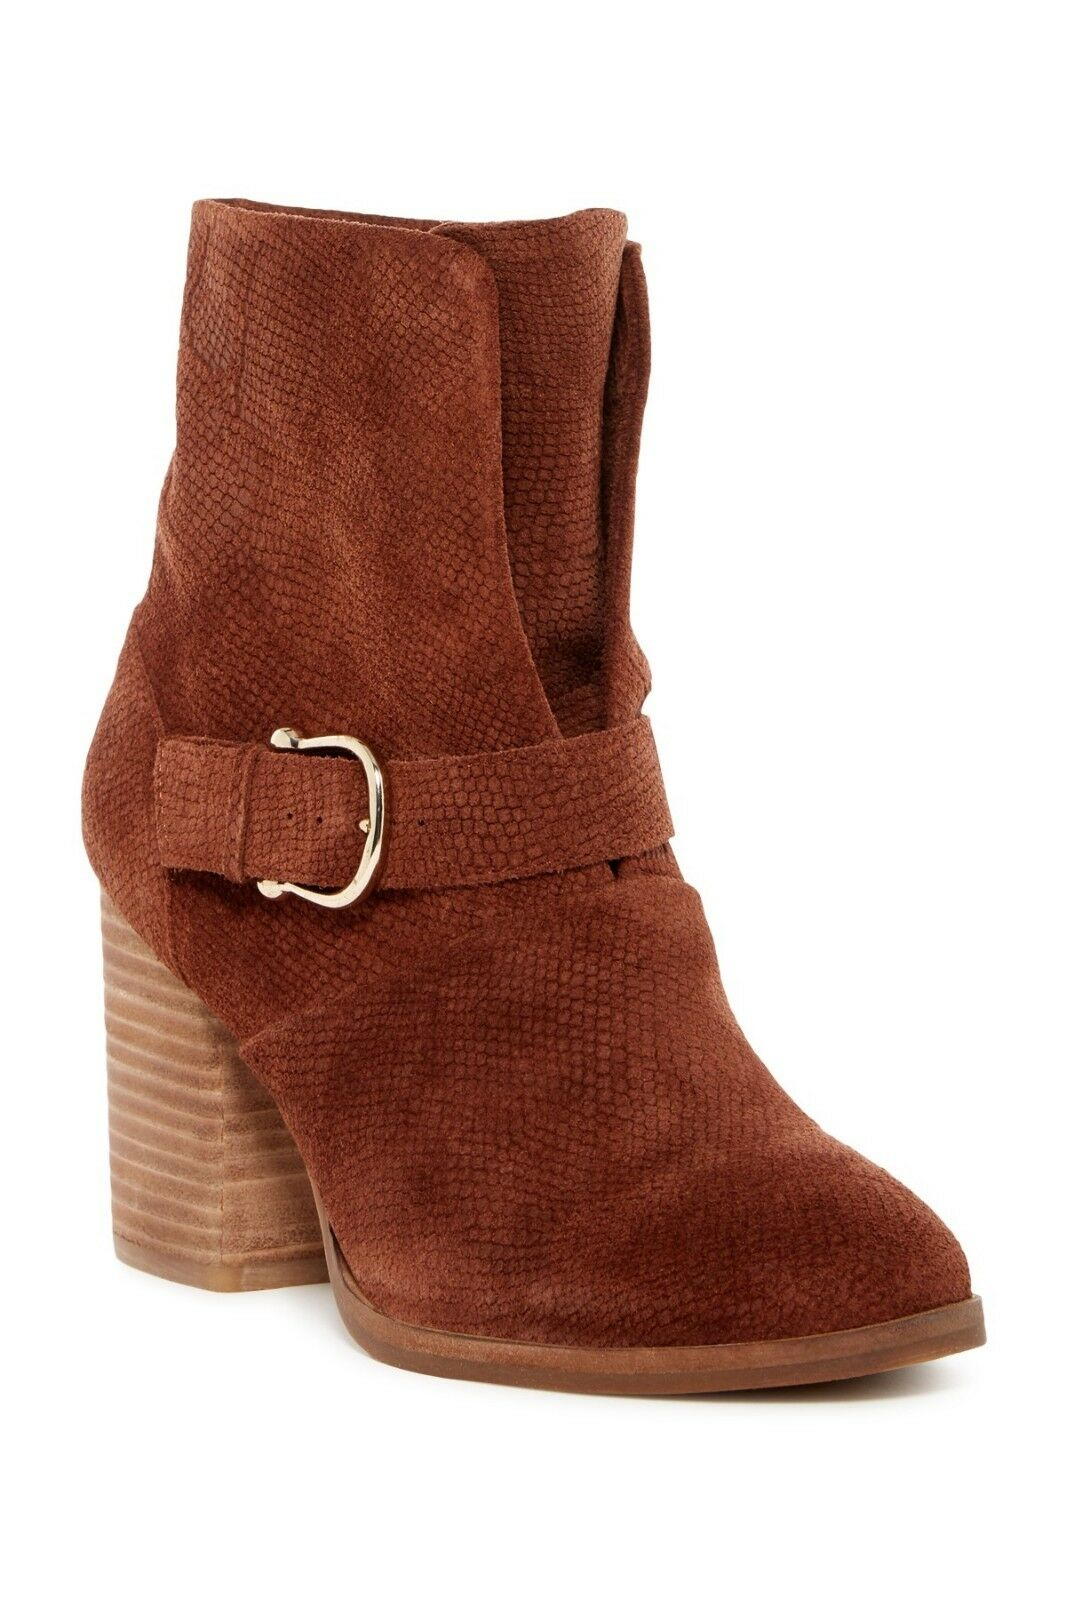 New  Isola Lavoy Block Heel démarrage  Cocoa Suede  femmes bottes Taille 9